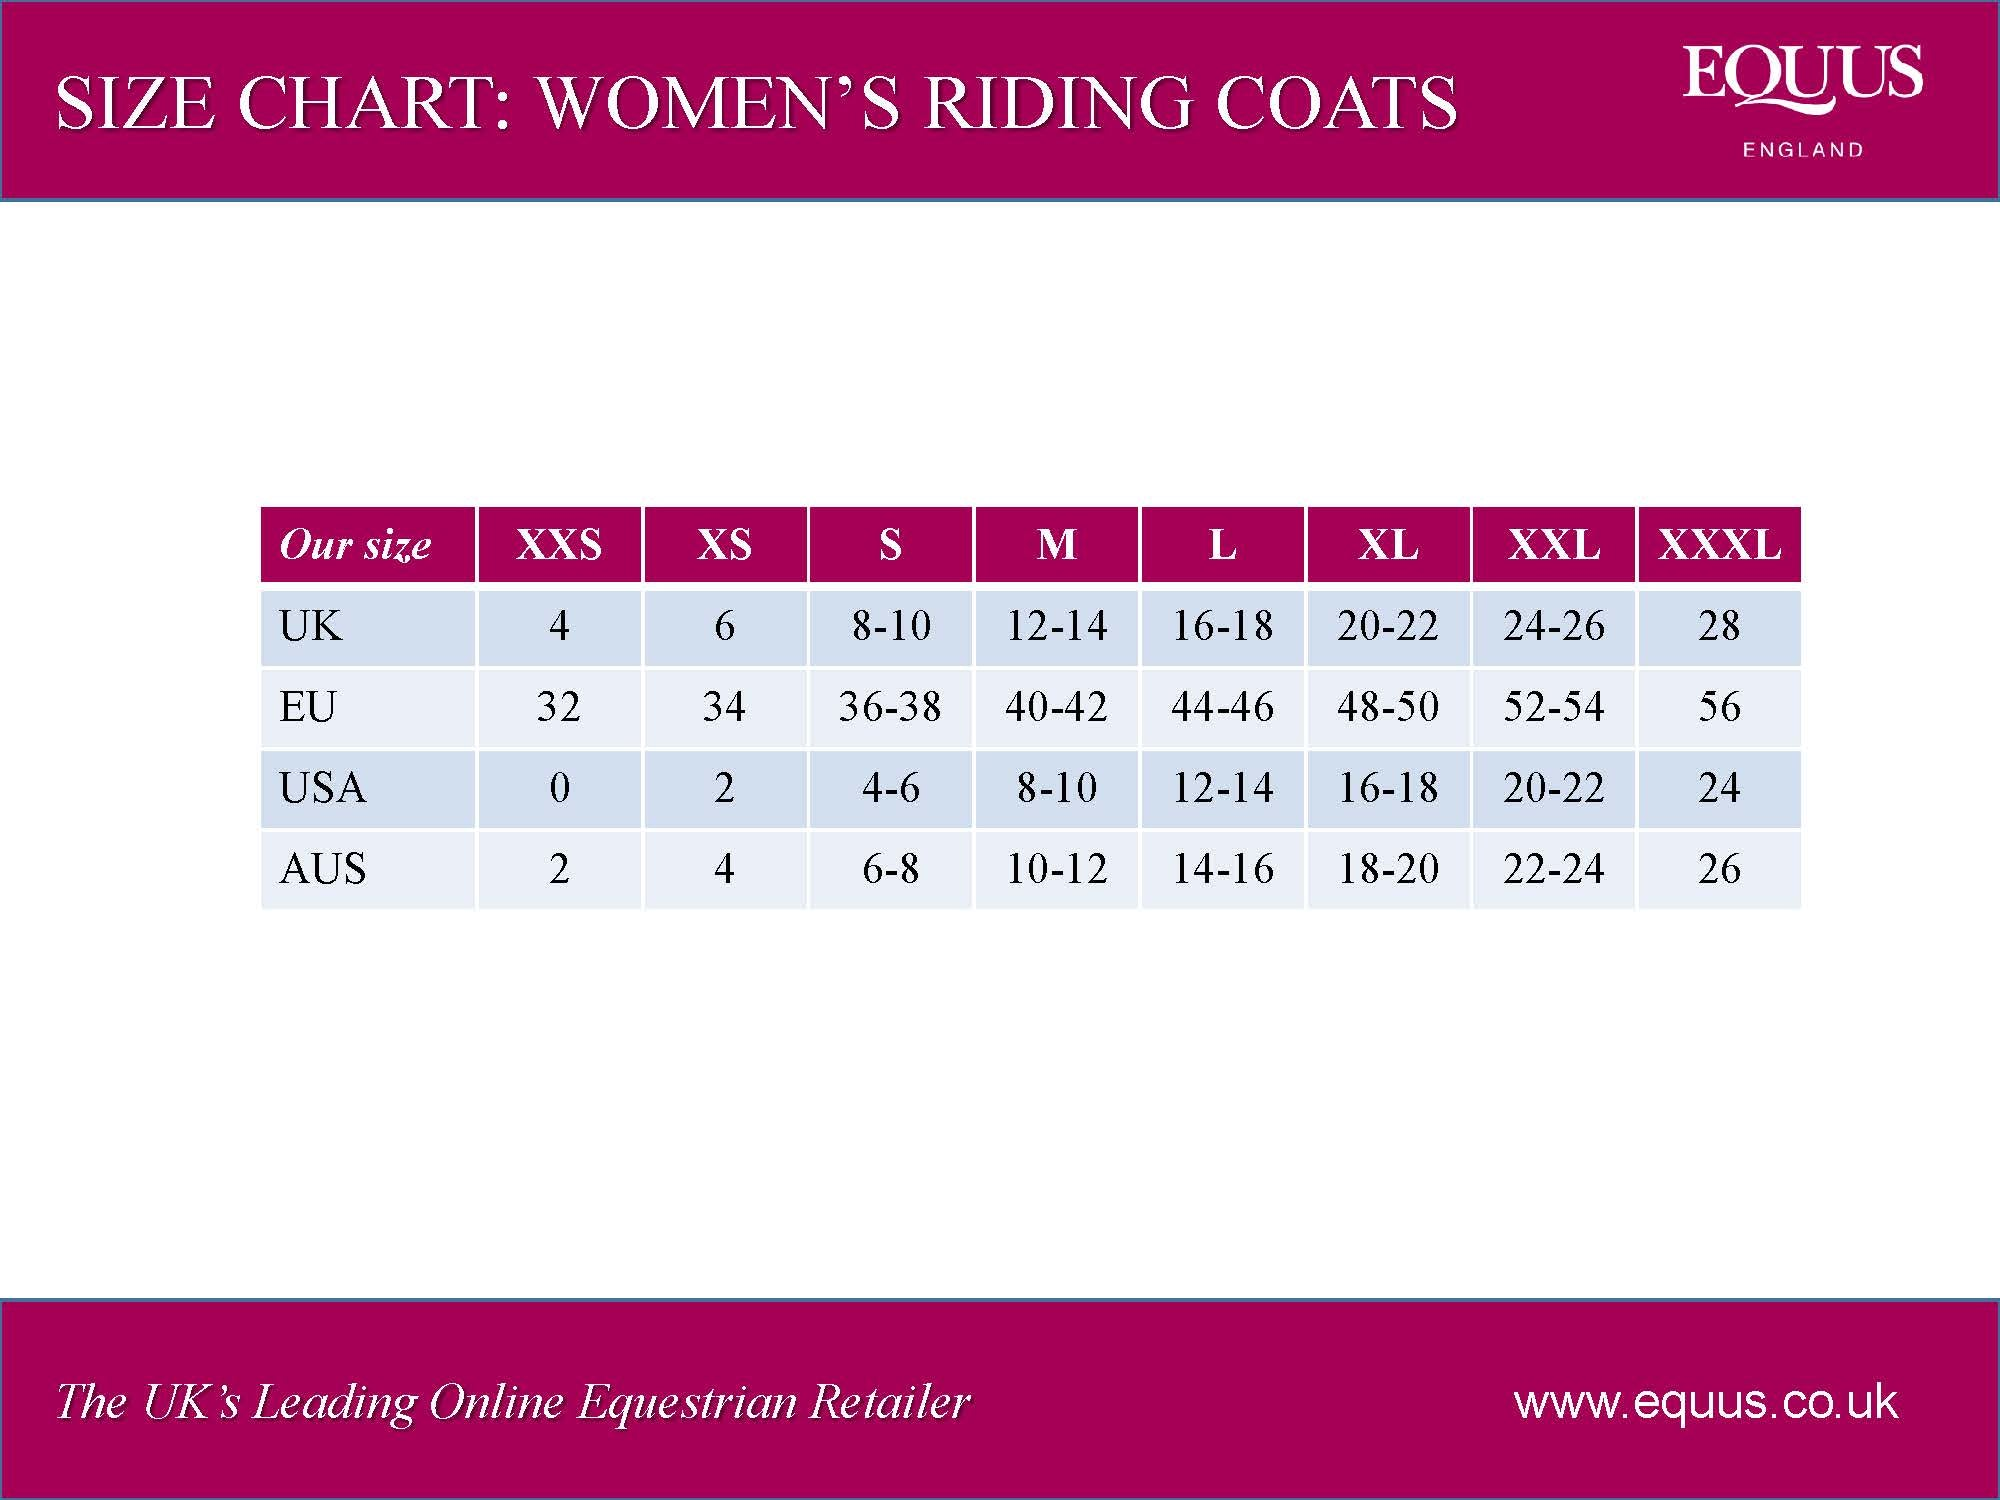 Women's Riding Coats Size Chart